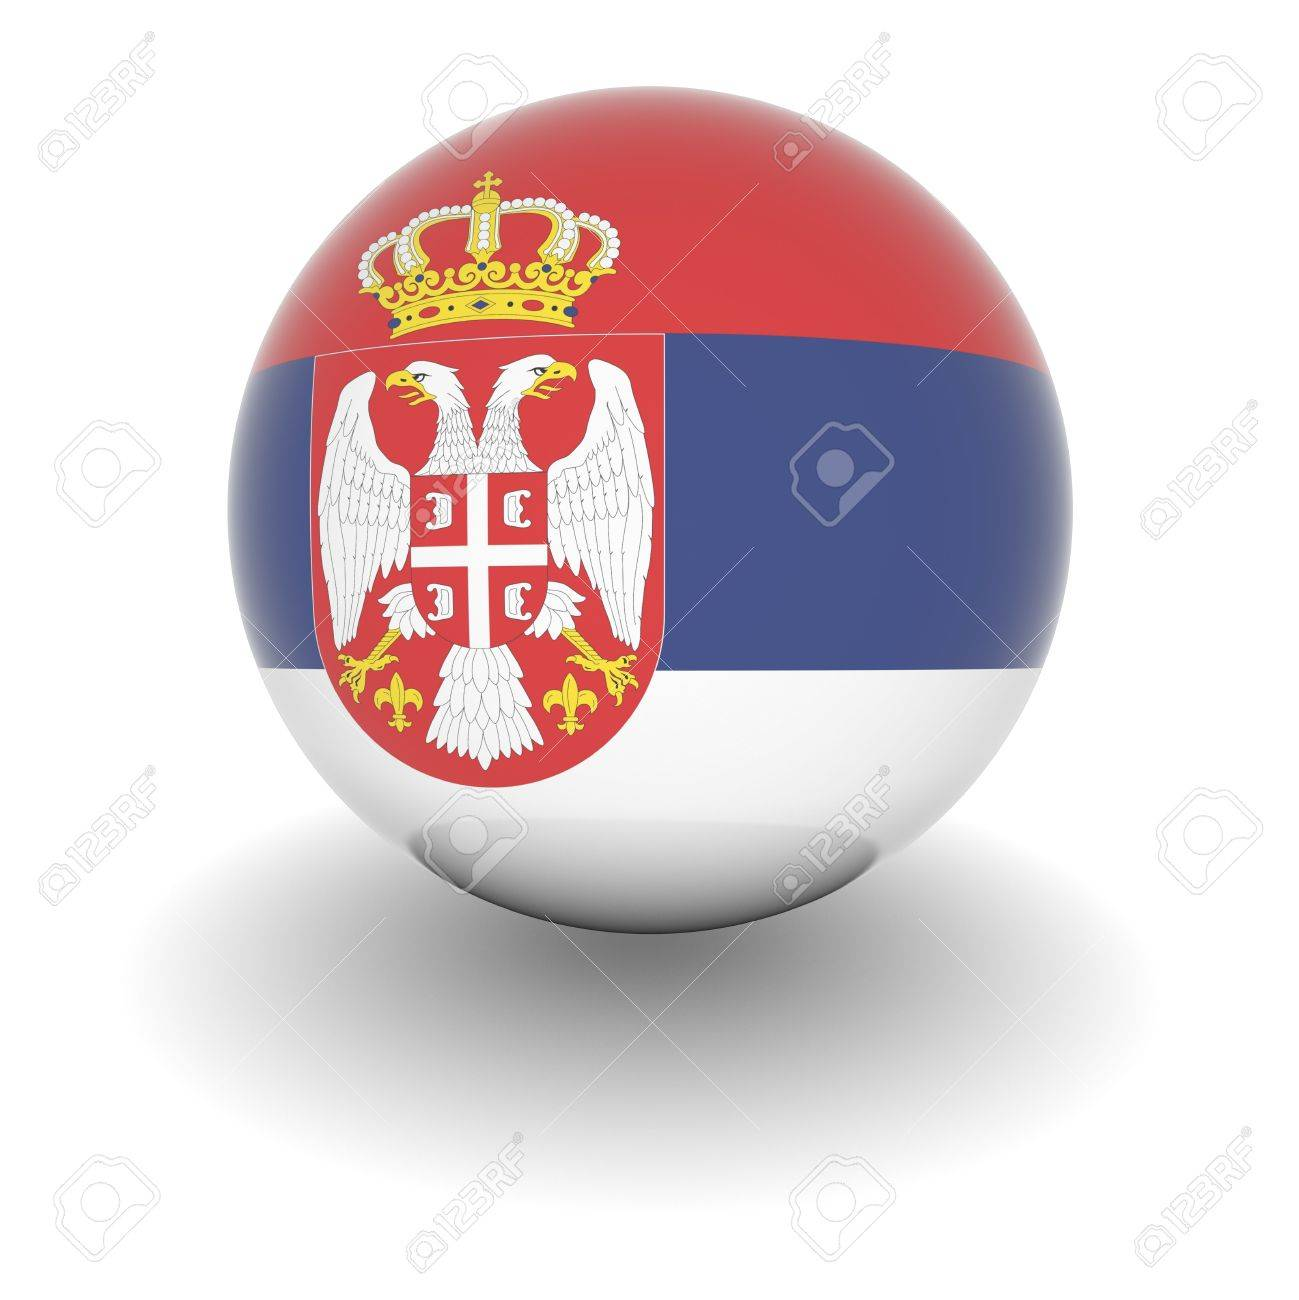 3D Ball with Flag of Serbia. High resolution 3d render isolated on white. Stock Photo - 5376610